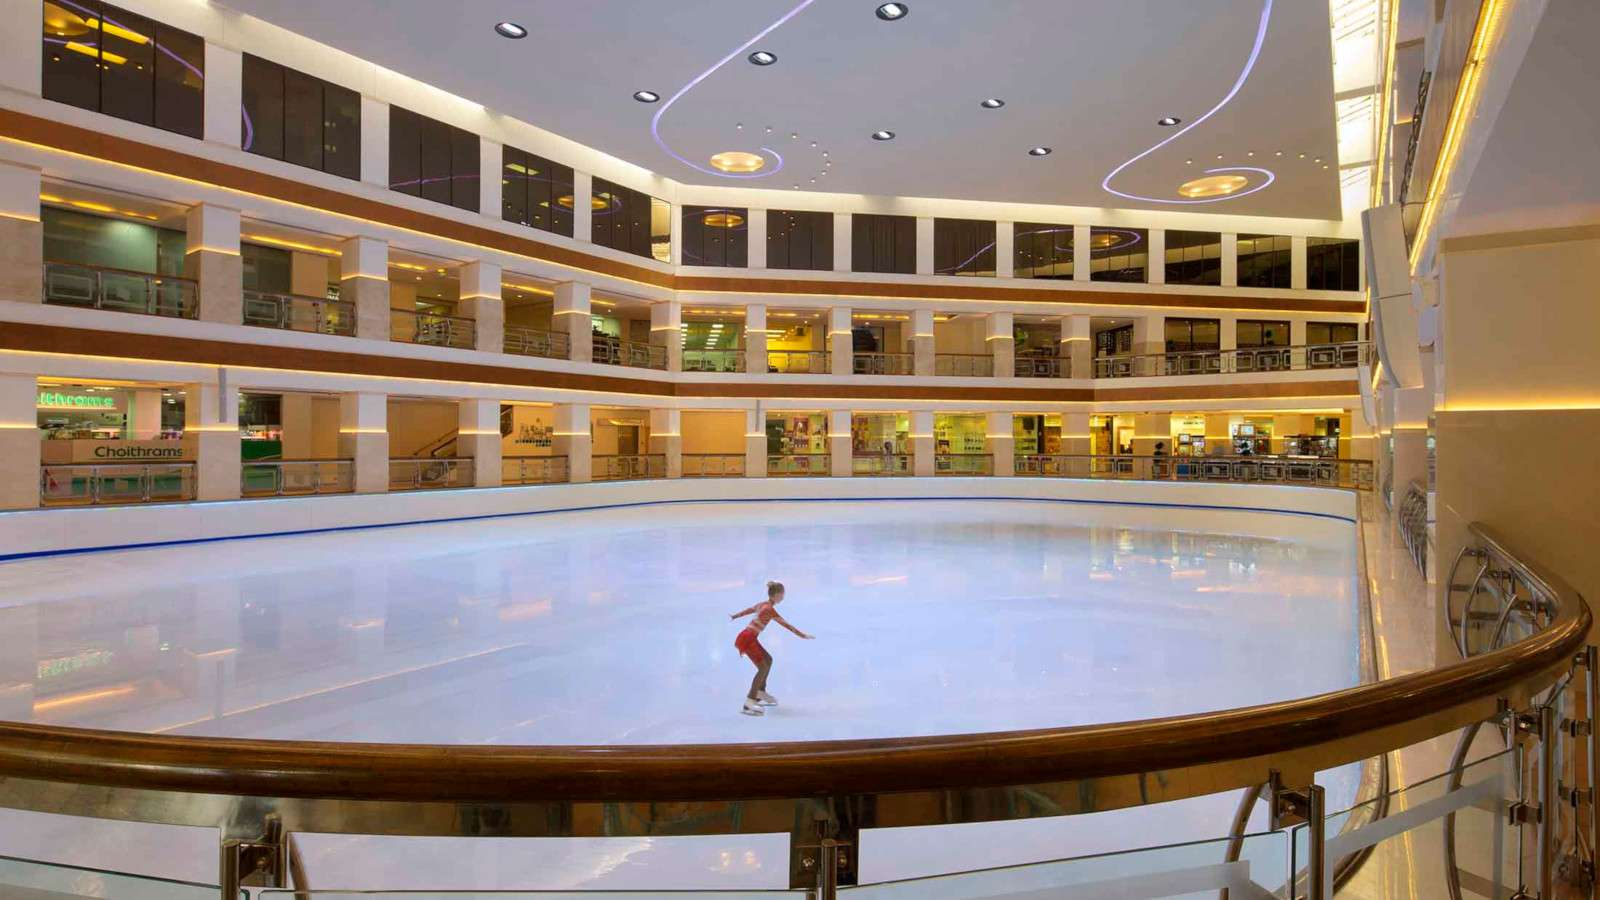 The Hyatt Regency in Dubai is a gorgeous and gay friendly hotel with some surprising extras, like this indoor ice-rink!